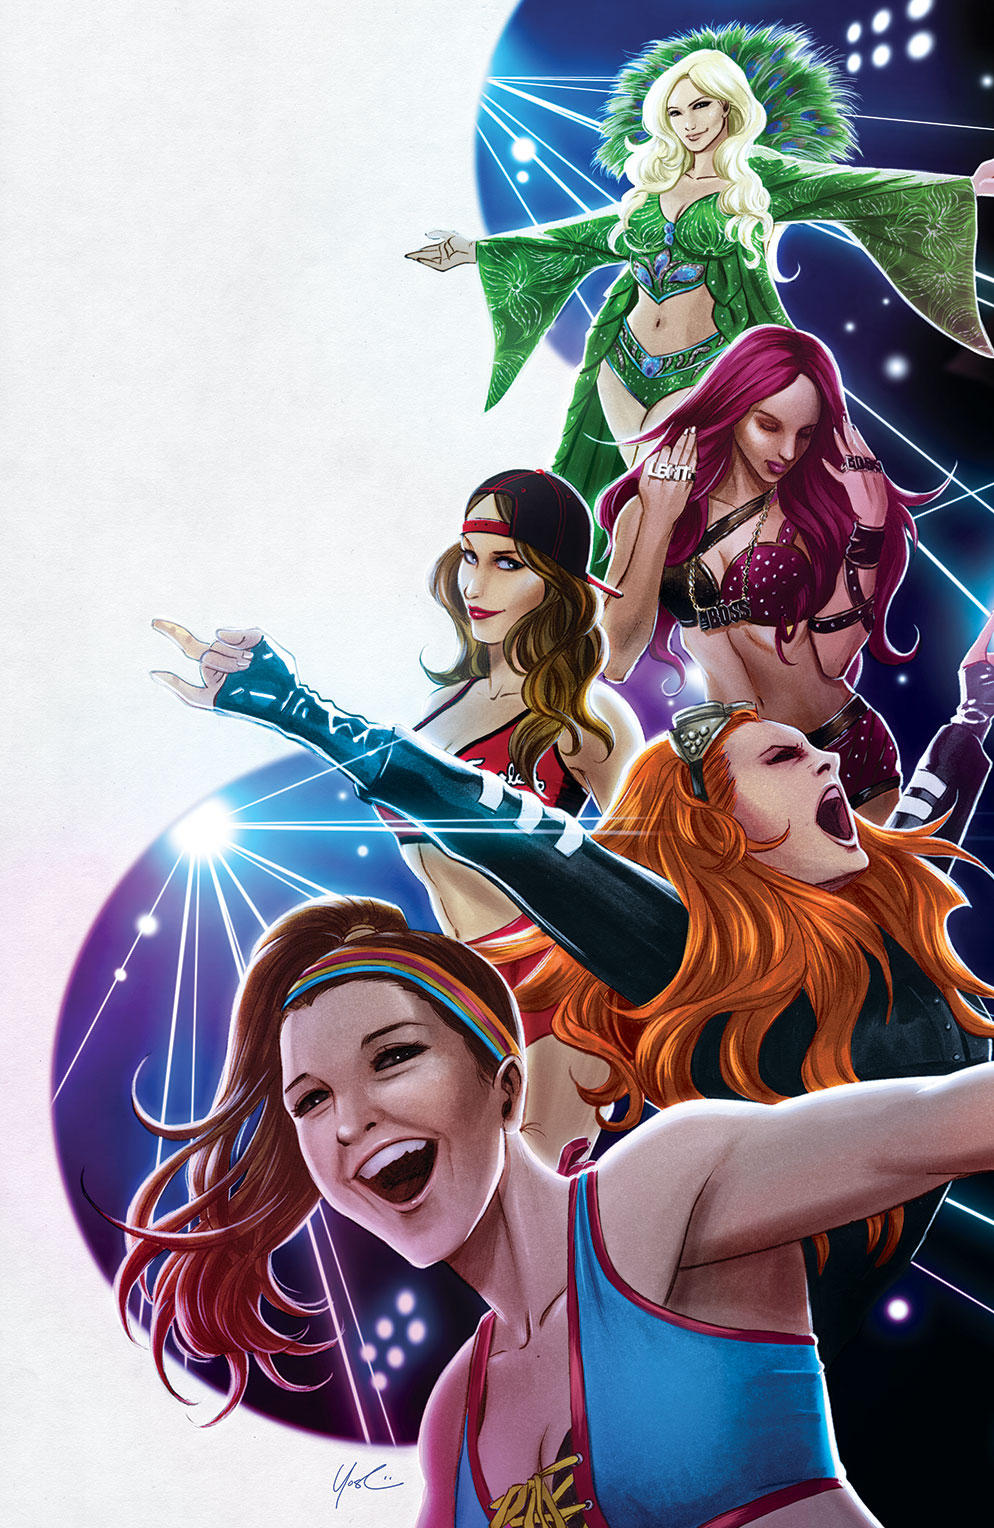 WWE SDCC 2017 Exclusive Cover by Protokitty